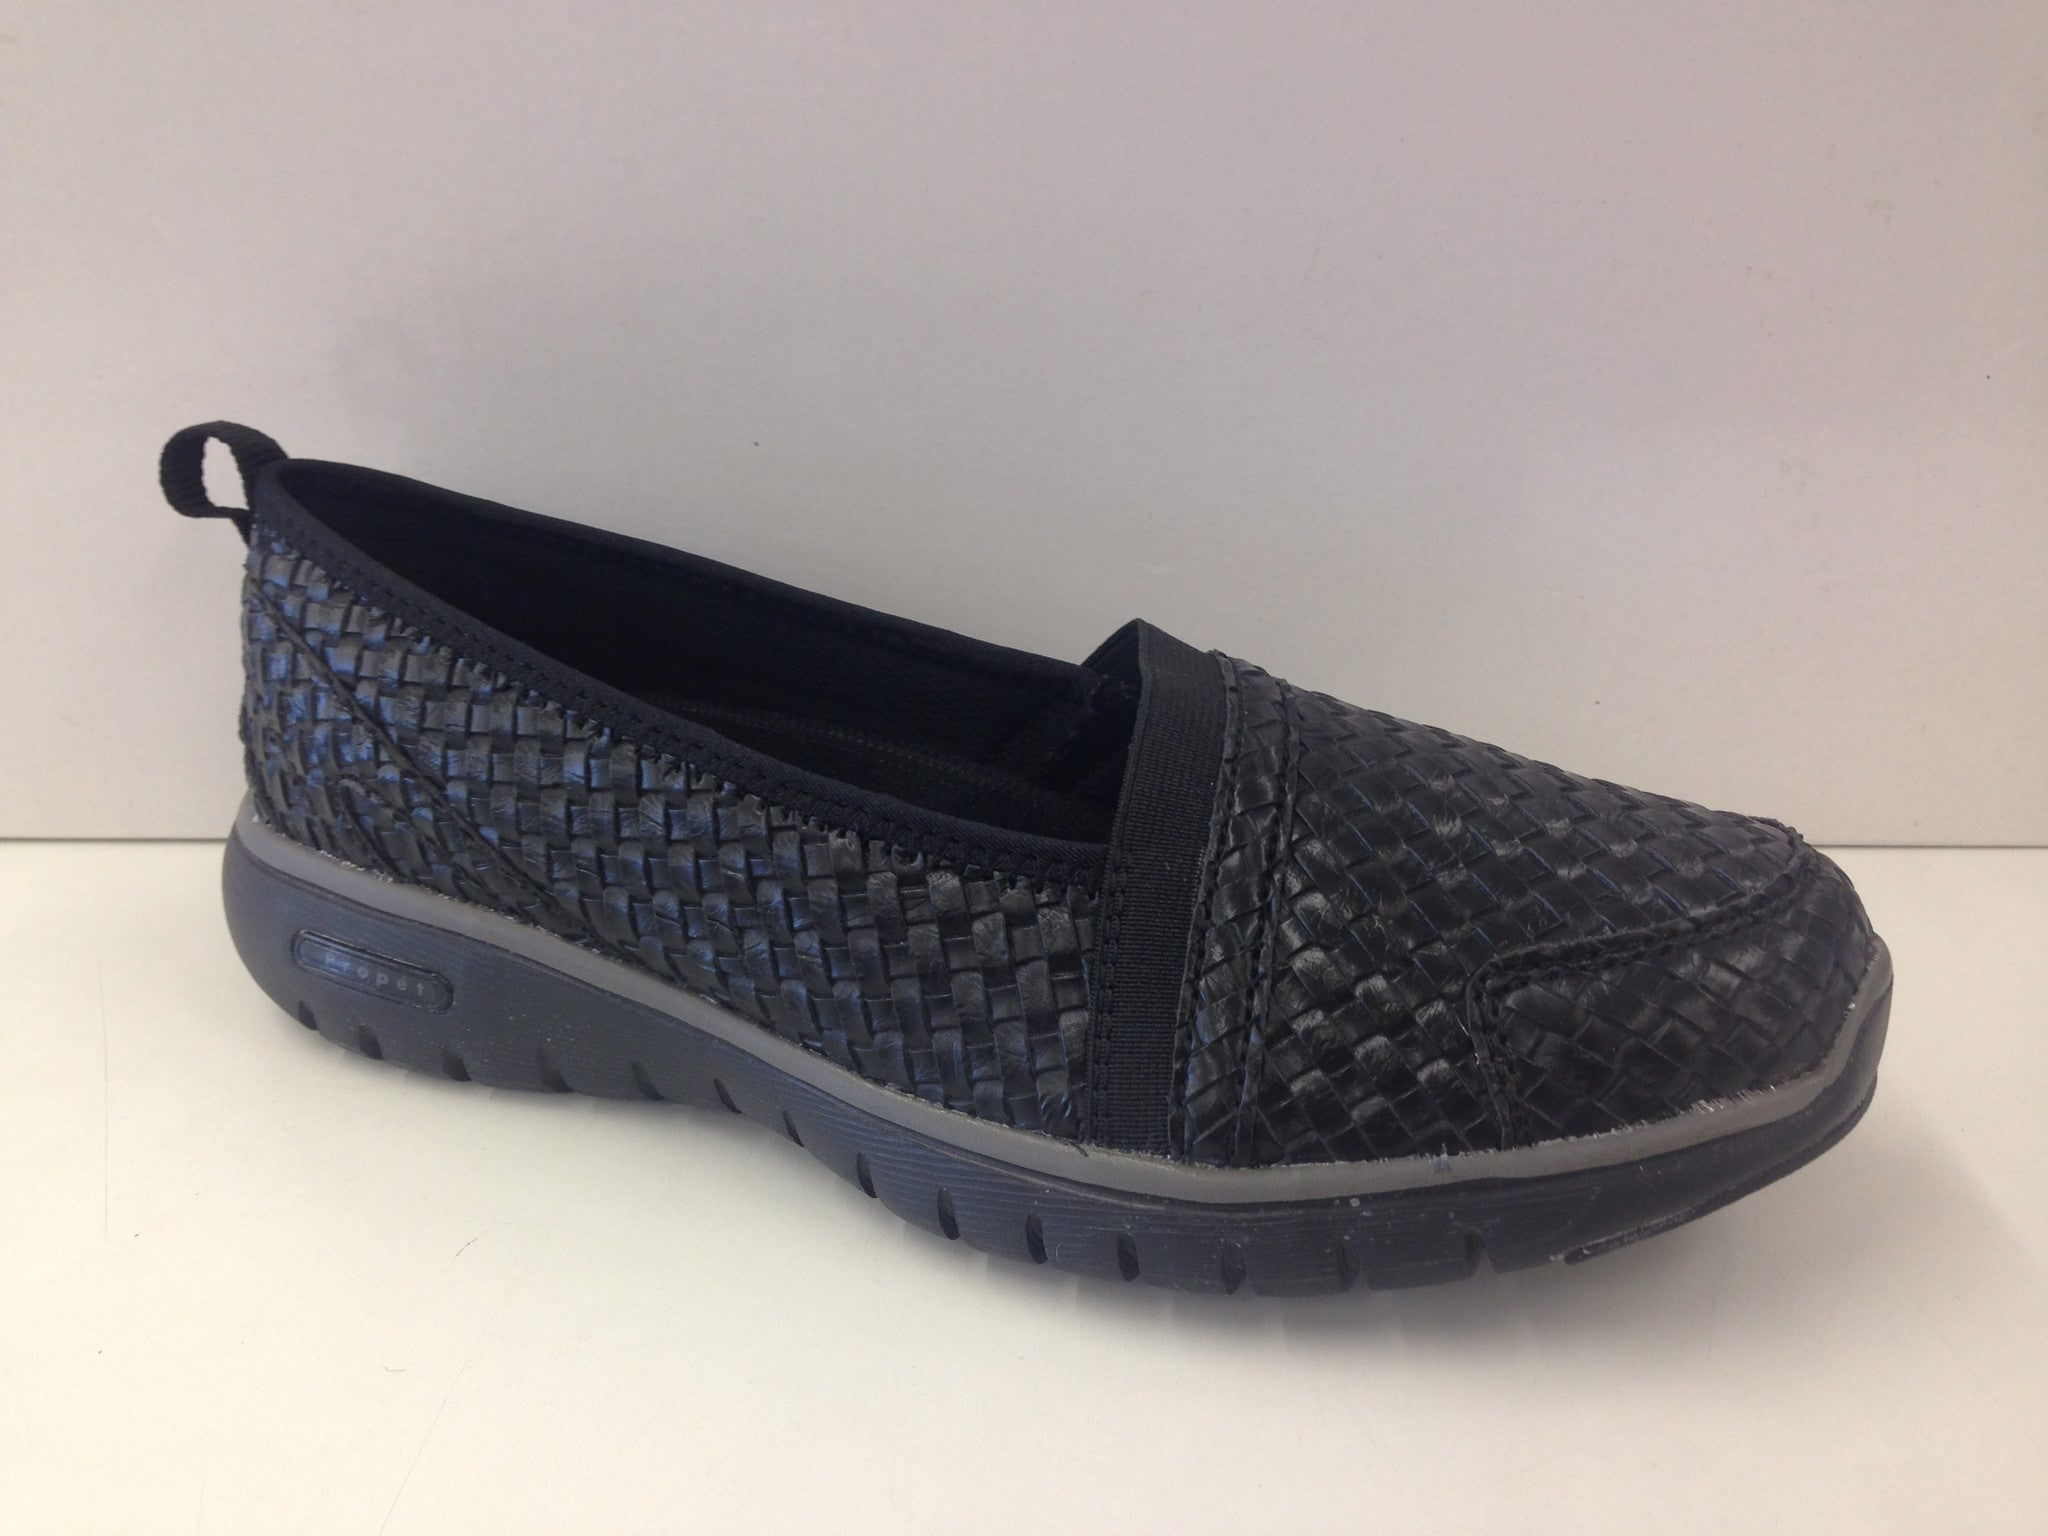 Propet Travel Lite Slip-on Woven W3238 - Simply Wide - 1